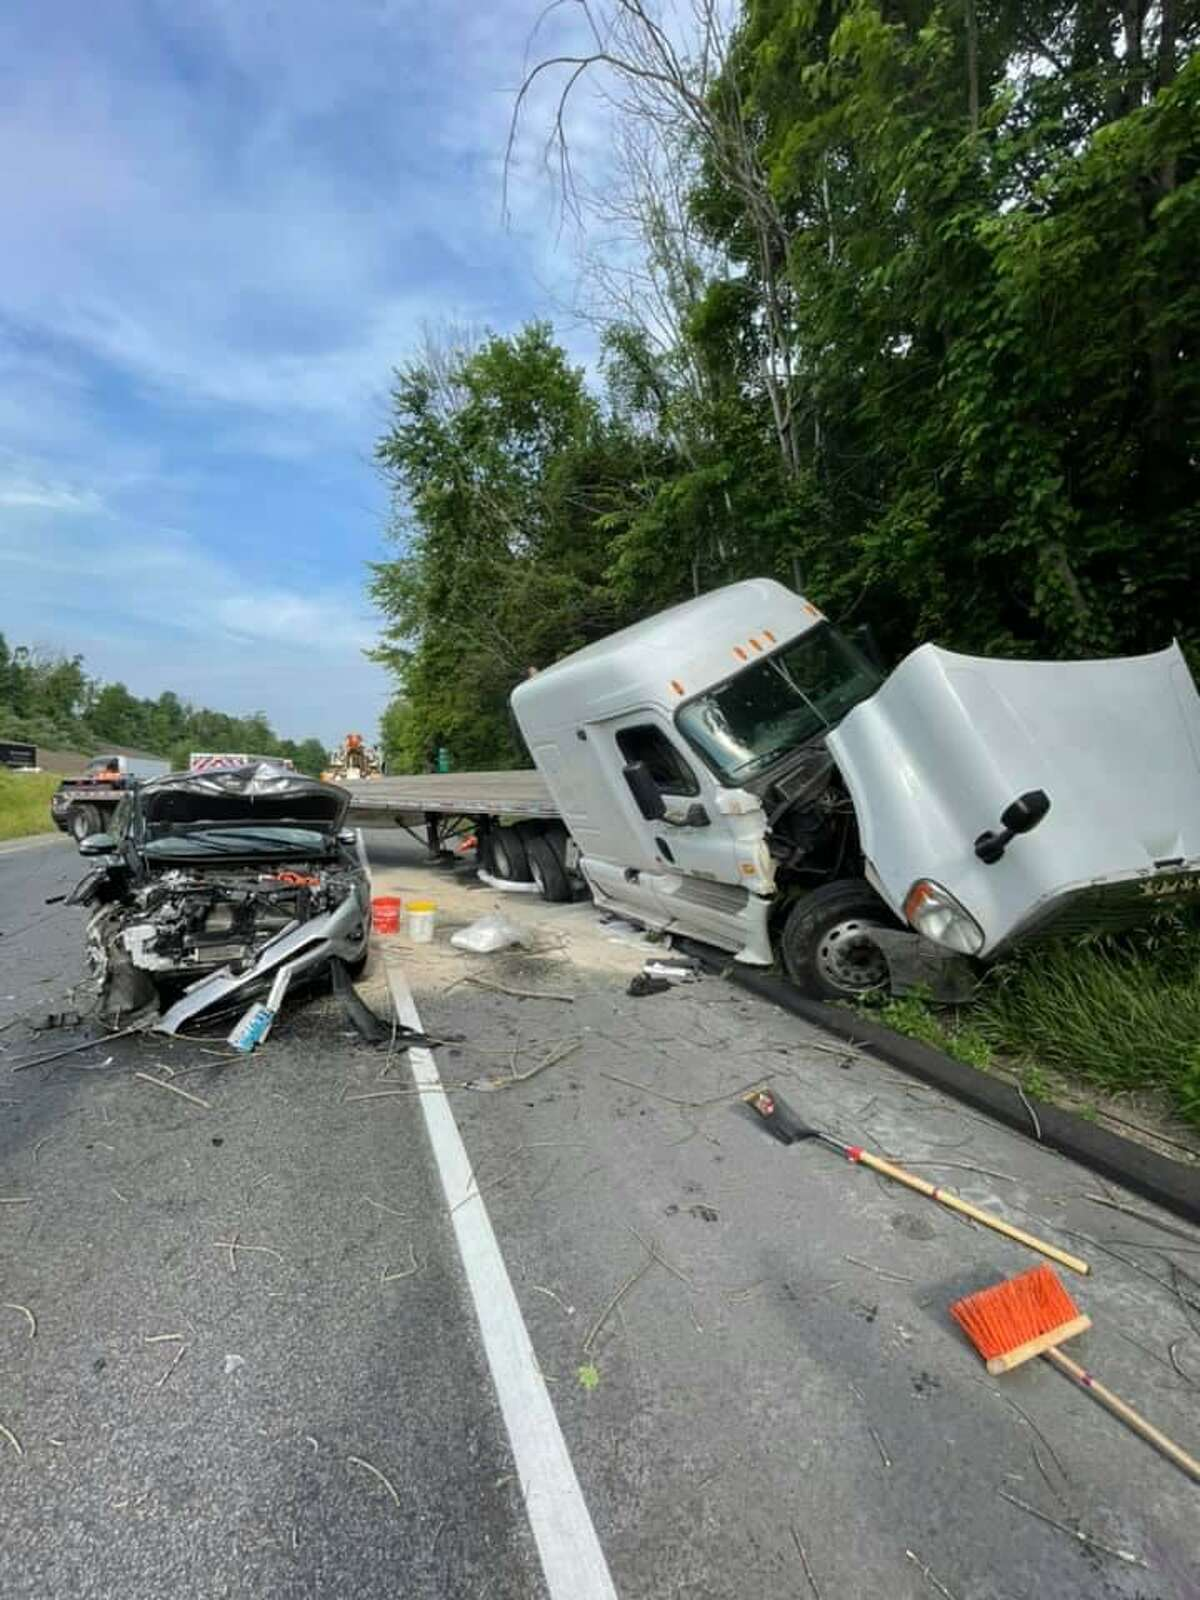 A tractor-trailer driver was found at fault for the crash on I-84 in Newtown that shut down a stretch of highway during Tuesday morning rush hour.